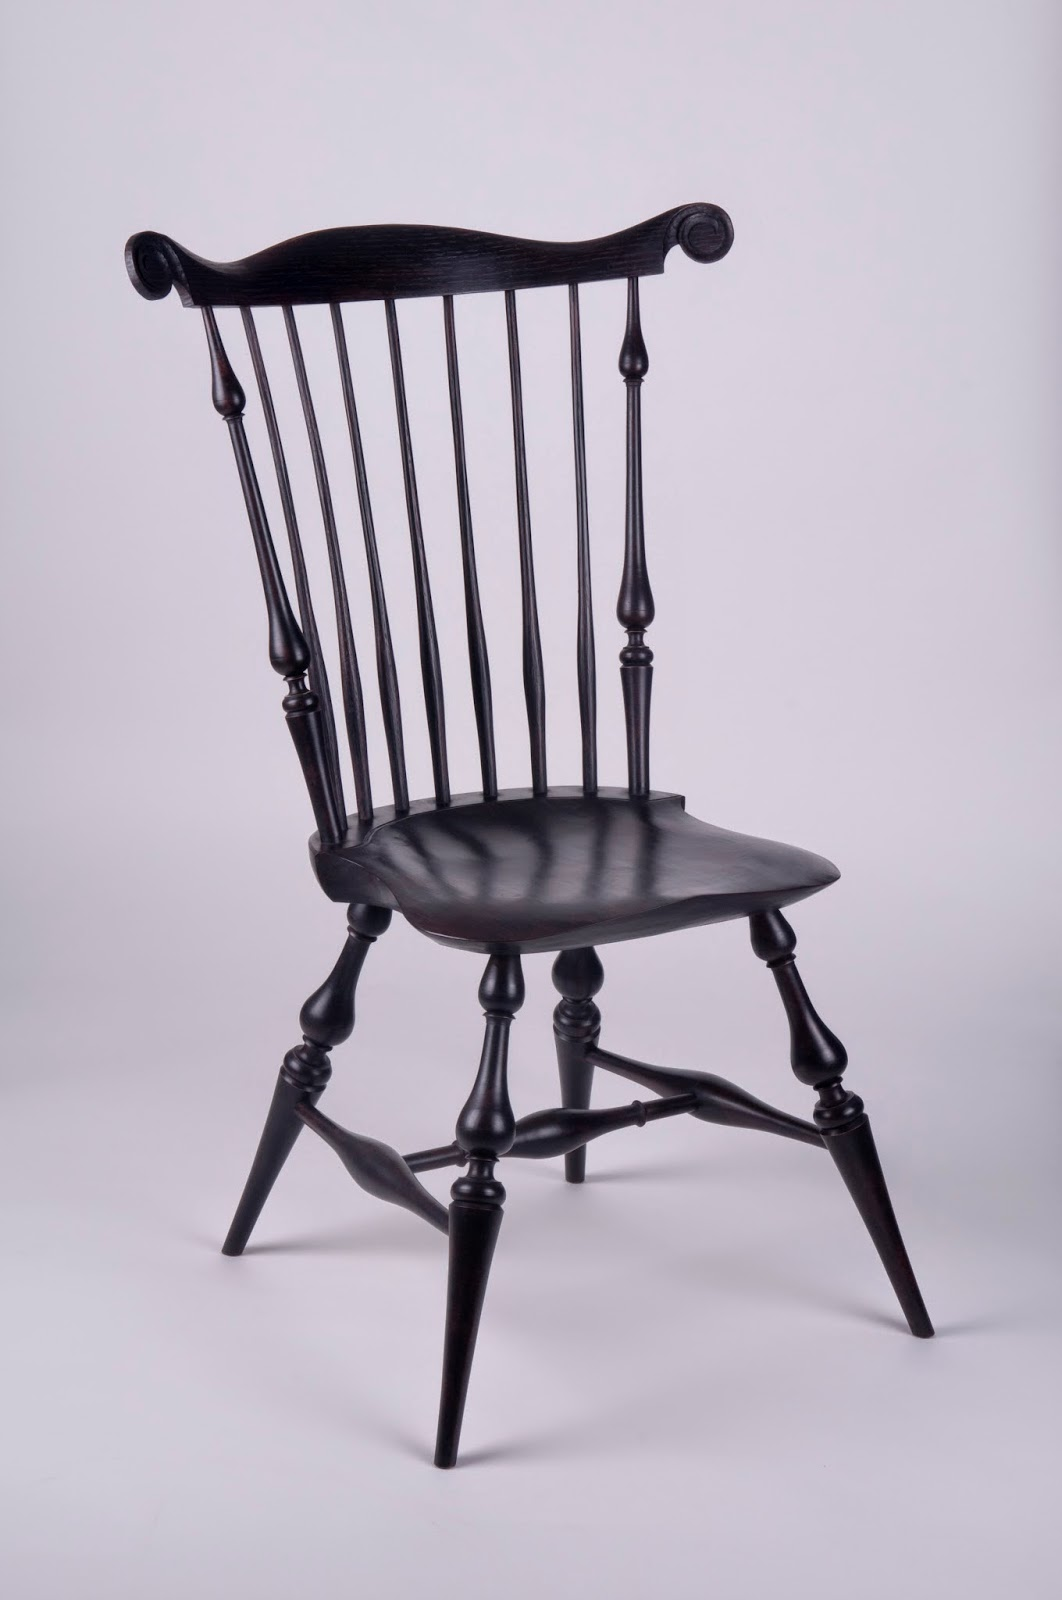 Fan Back Chair Caleb James Chairmaker Planemaker Fan Back Windsor Chair